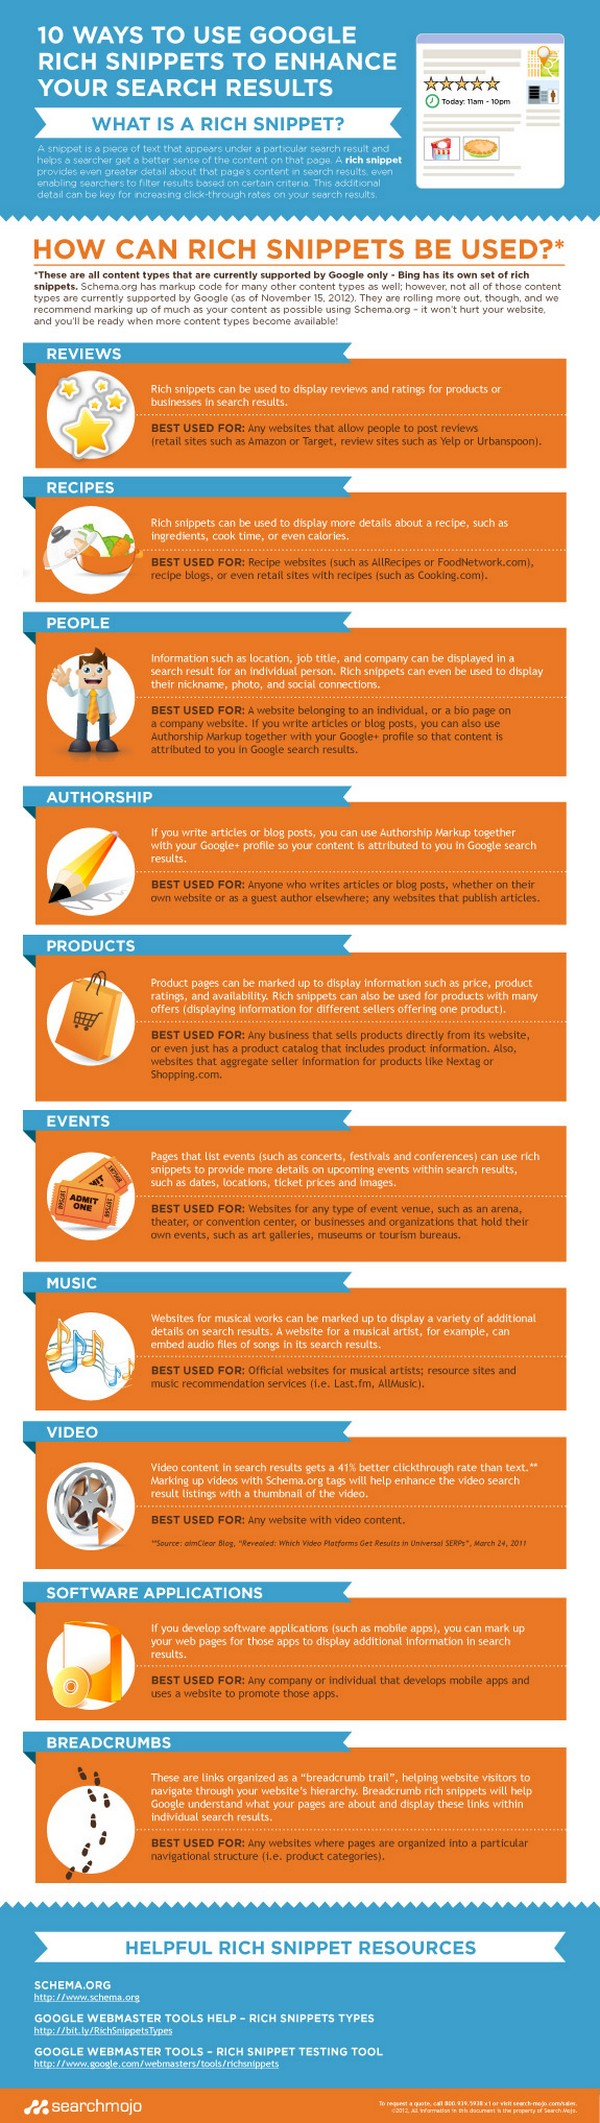 infographie-rich-snippets-conseils